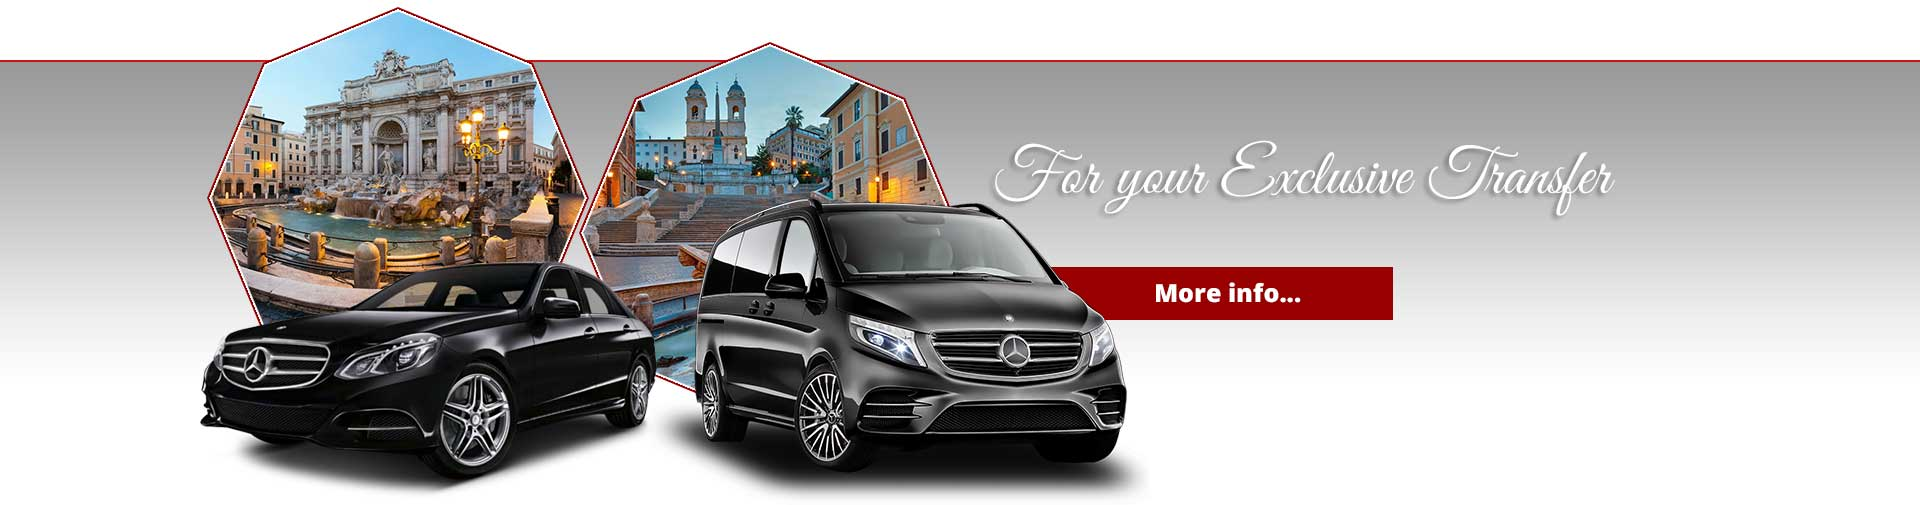 Car hire company for transfer in Rome